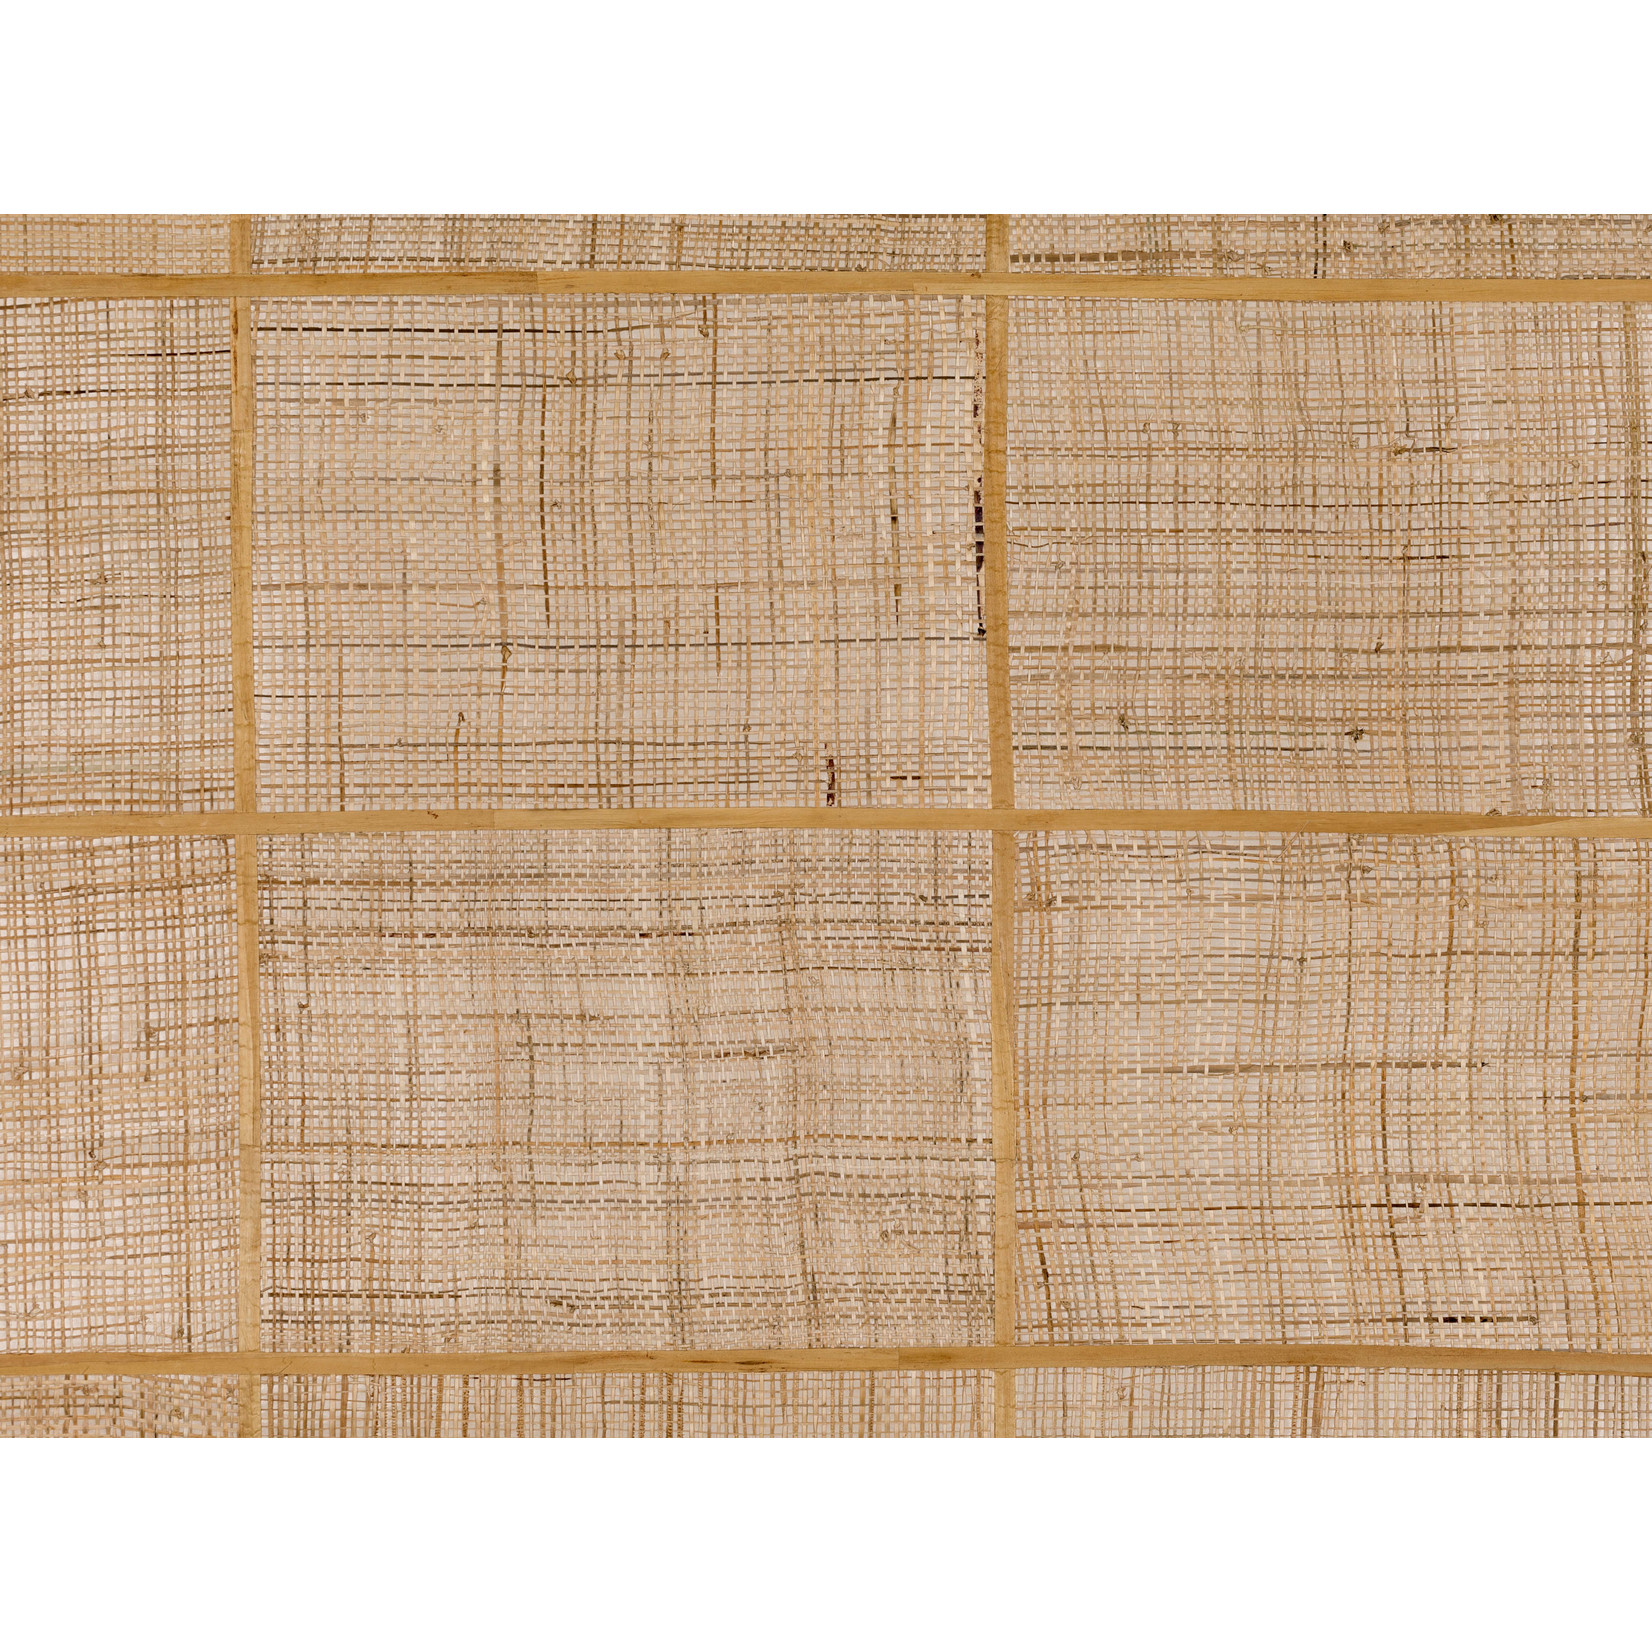 Mark Alexander Collage Handcrafted Wallcoverings   Grid Natural